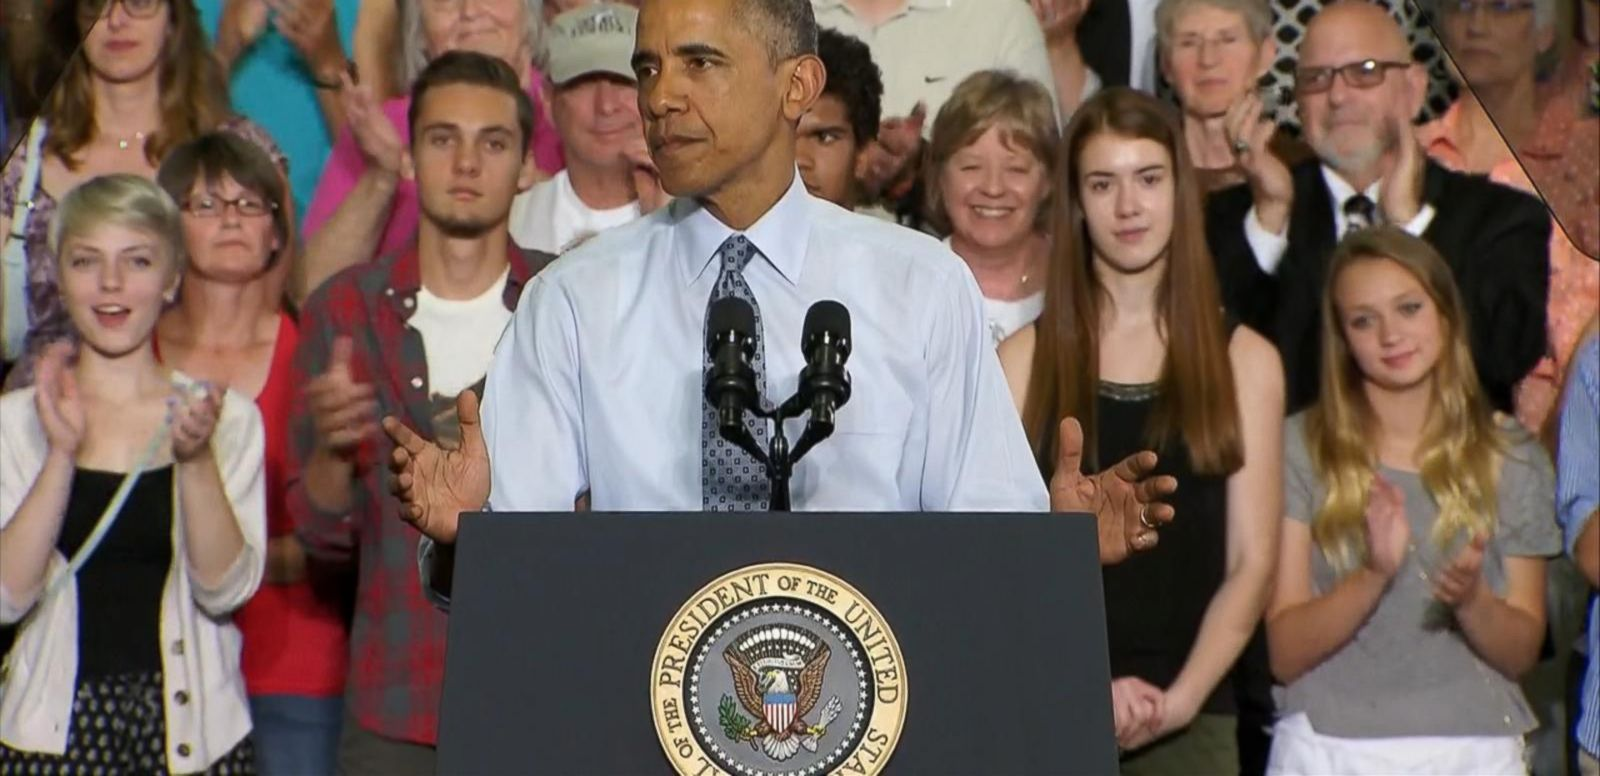 VIDEO: In a rousing and campaign-like speech, President Obama highlights the last 7 years of his presidency in a push to expand eligibility for overtime pay.